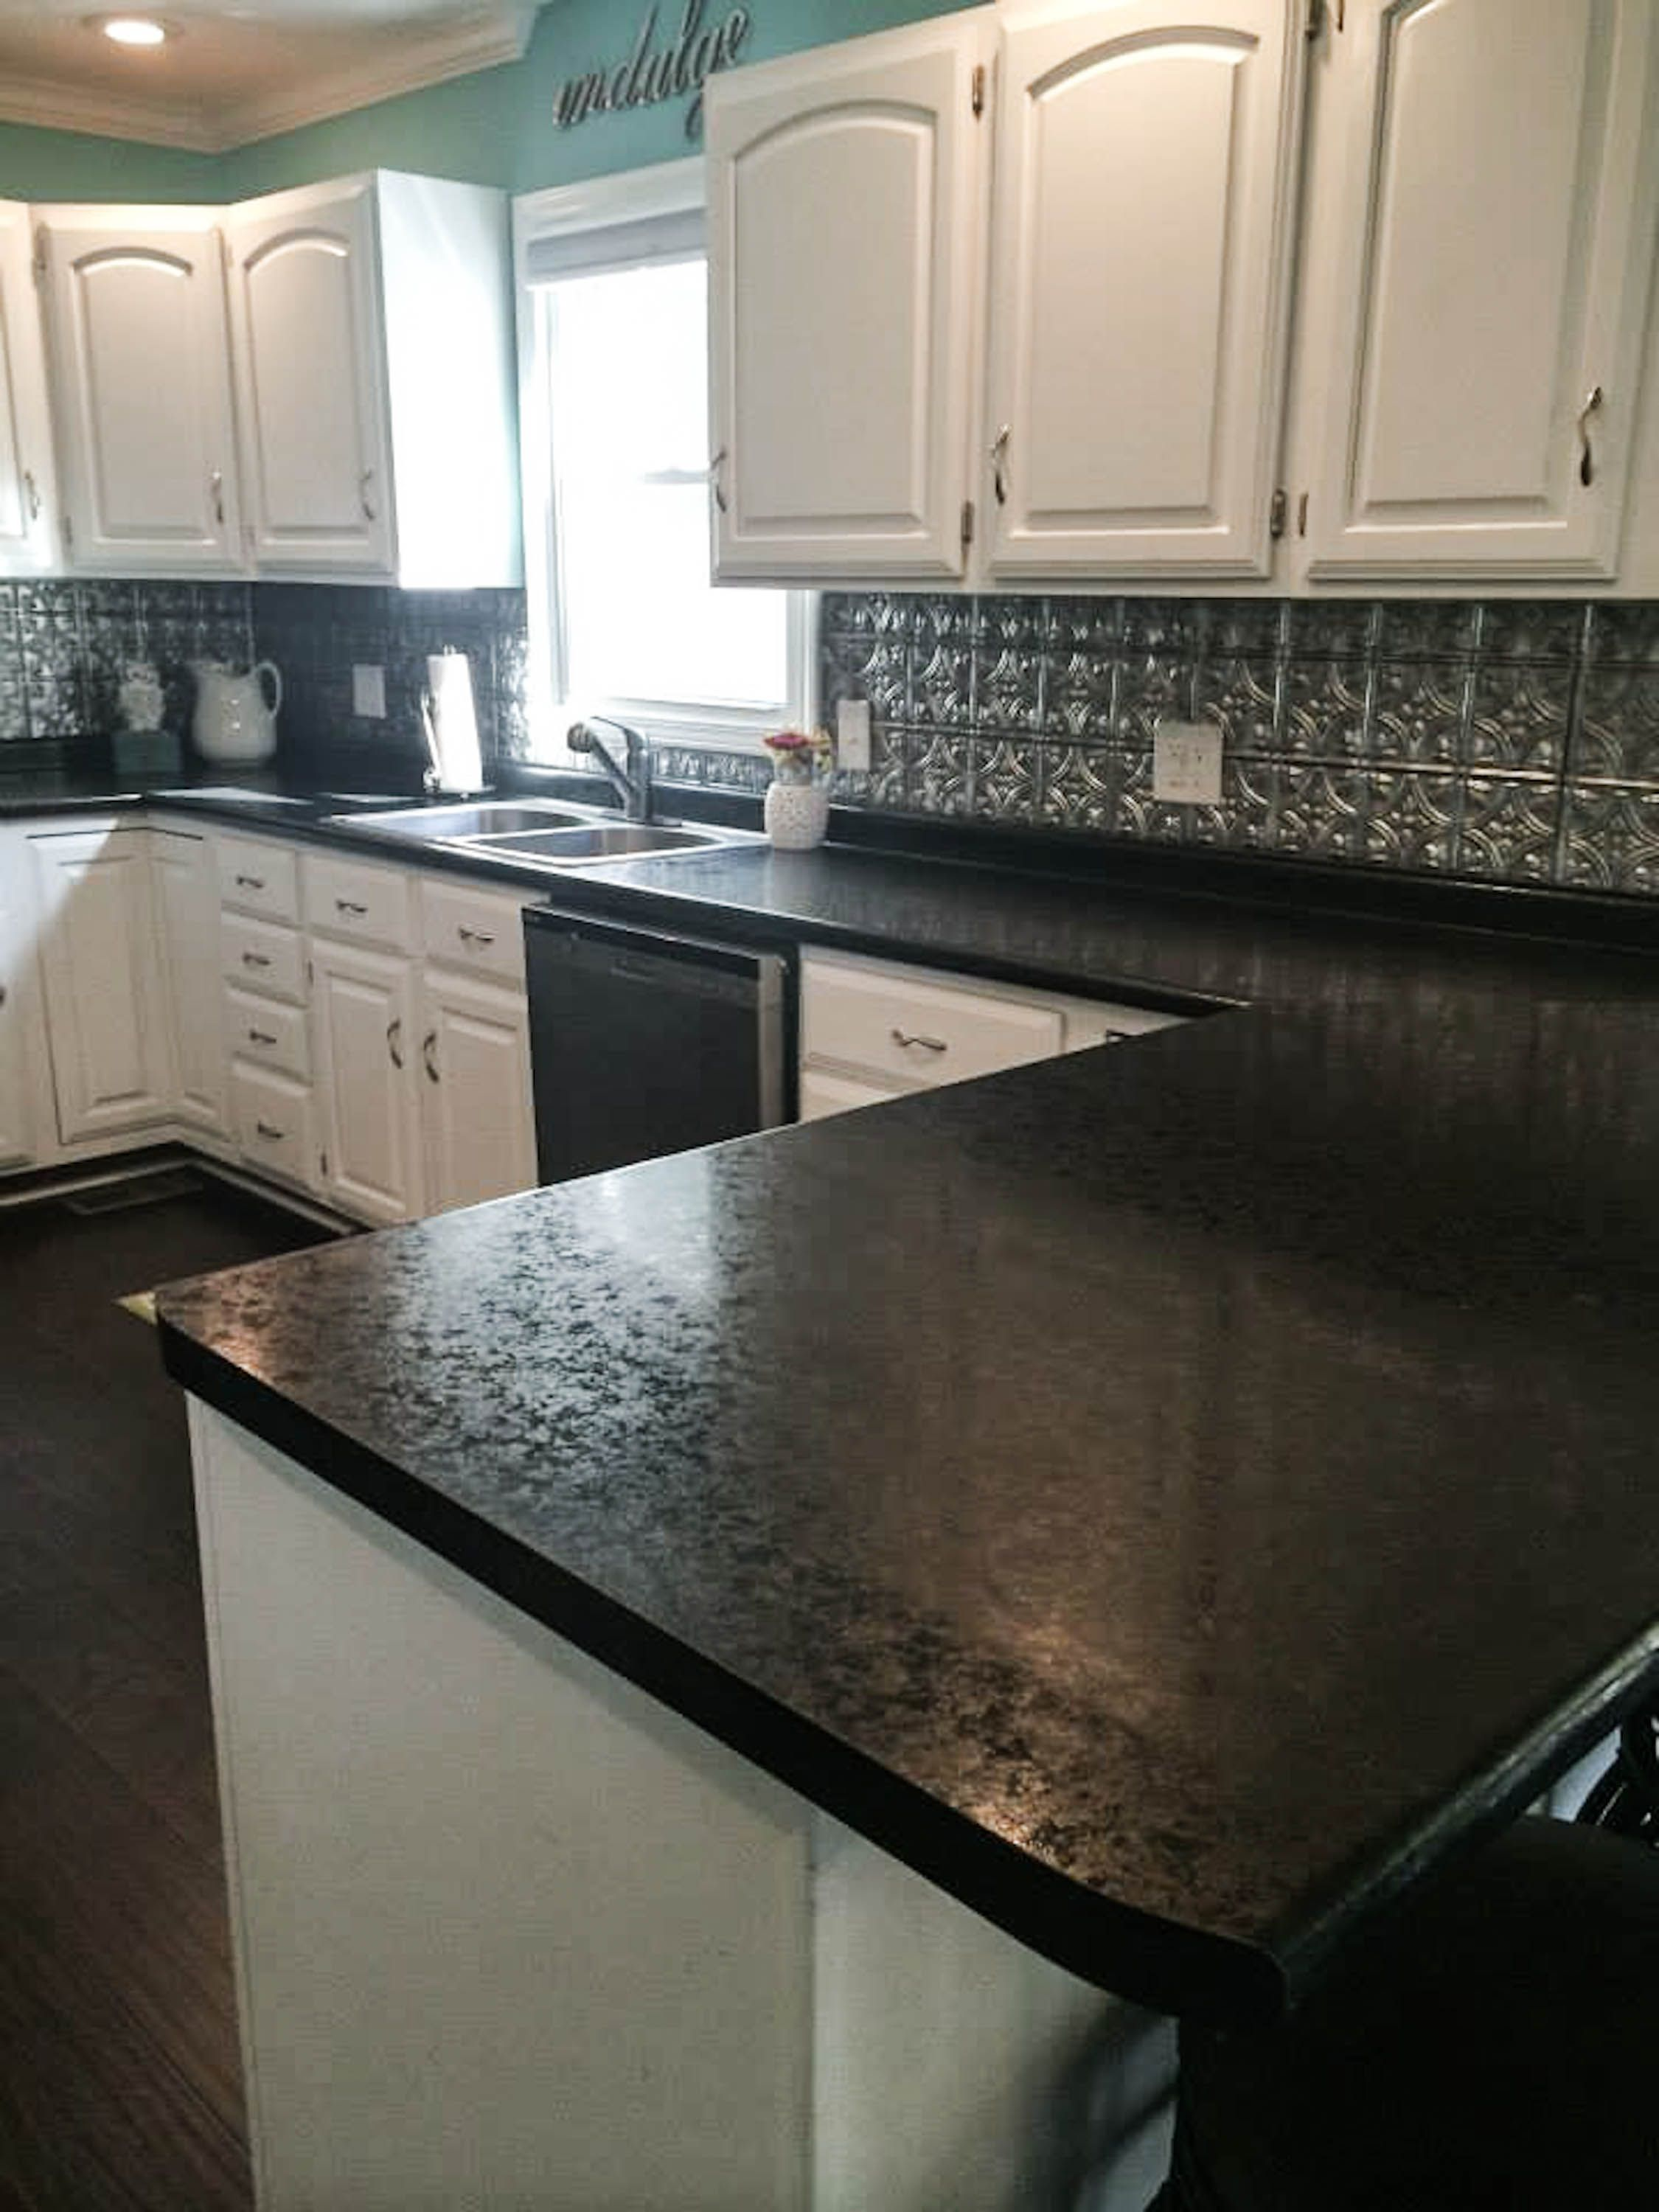 When we bought our foreclosure, the kitchen was one of the biggest eye sores of the entire house. The renovation turned out to be one of my very favorites.